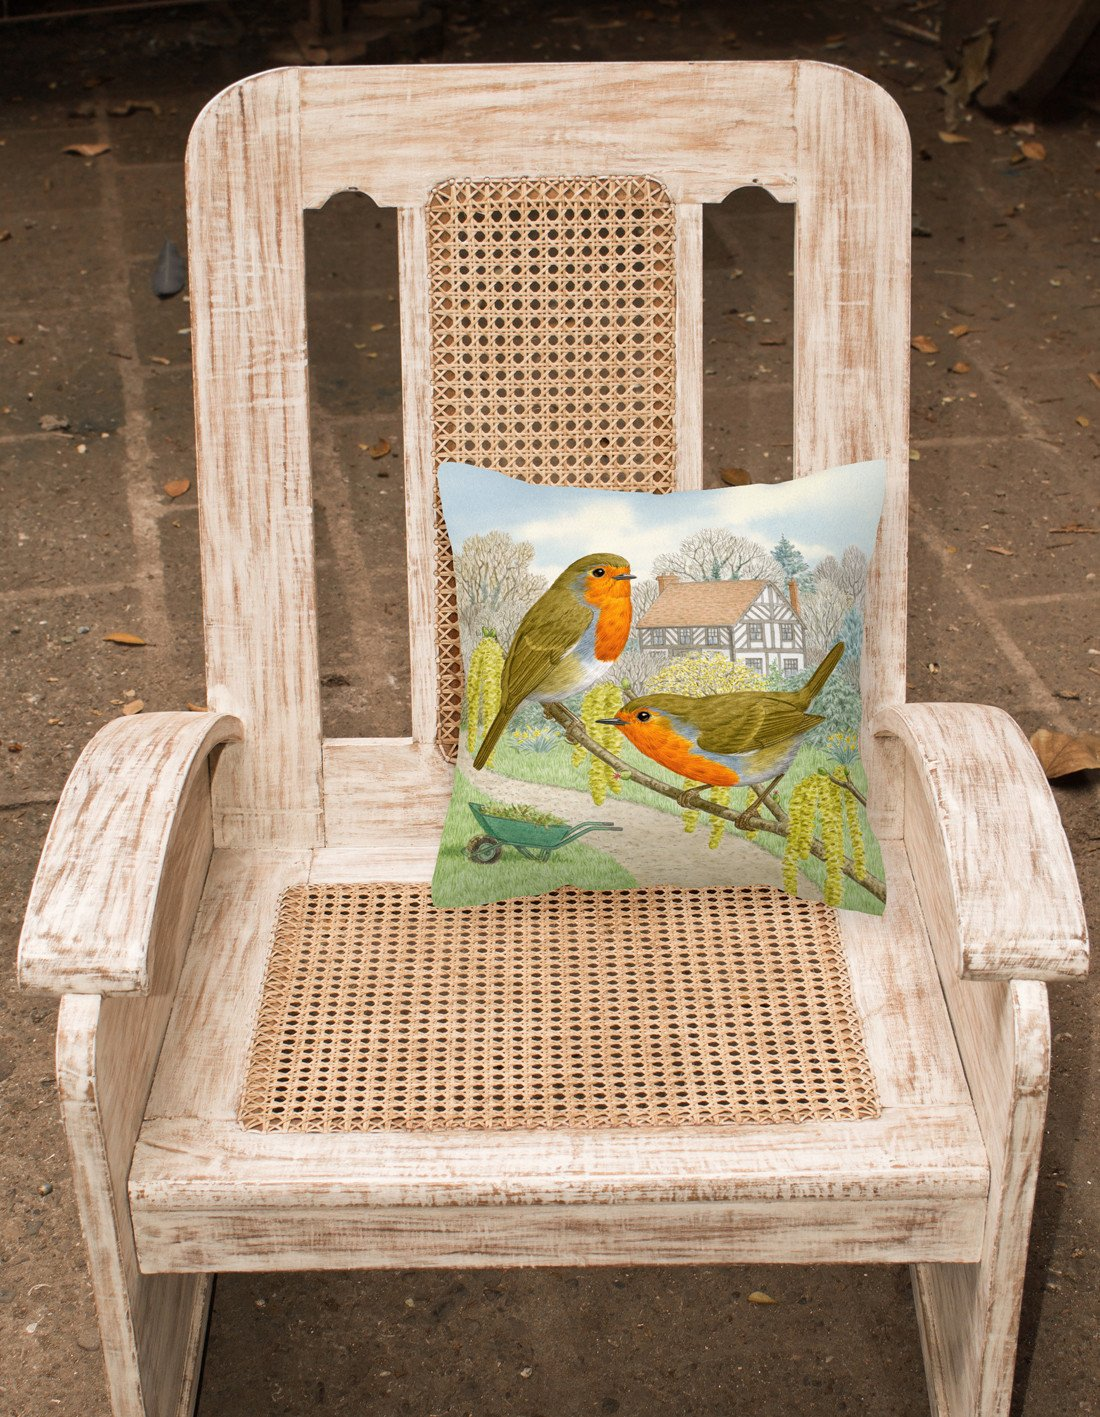 European Robin by Sarah Adams Canvas Decorative Pillow ASAD0684PW1414 - the-store.com